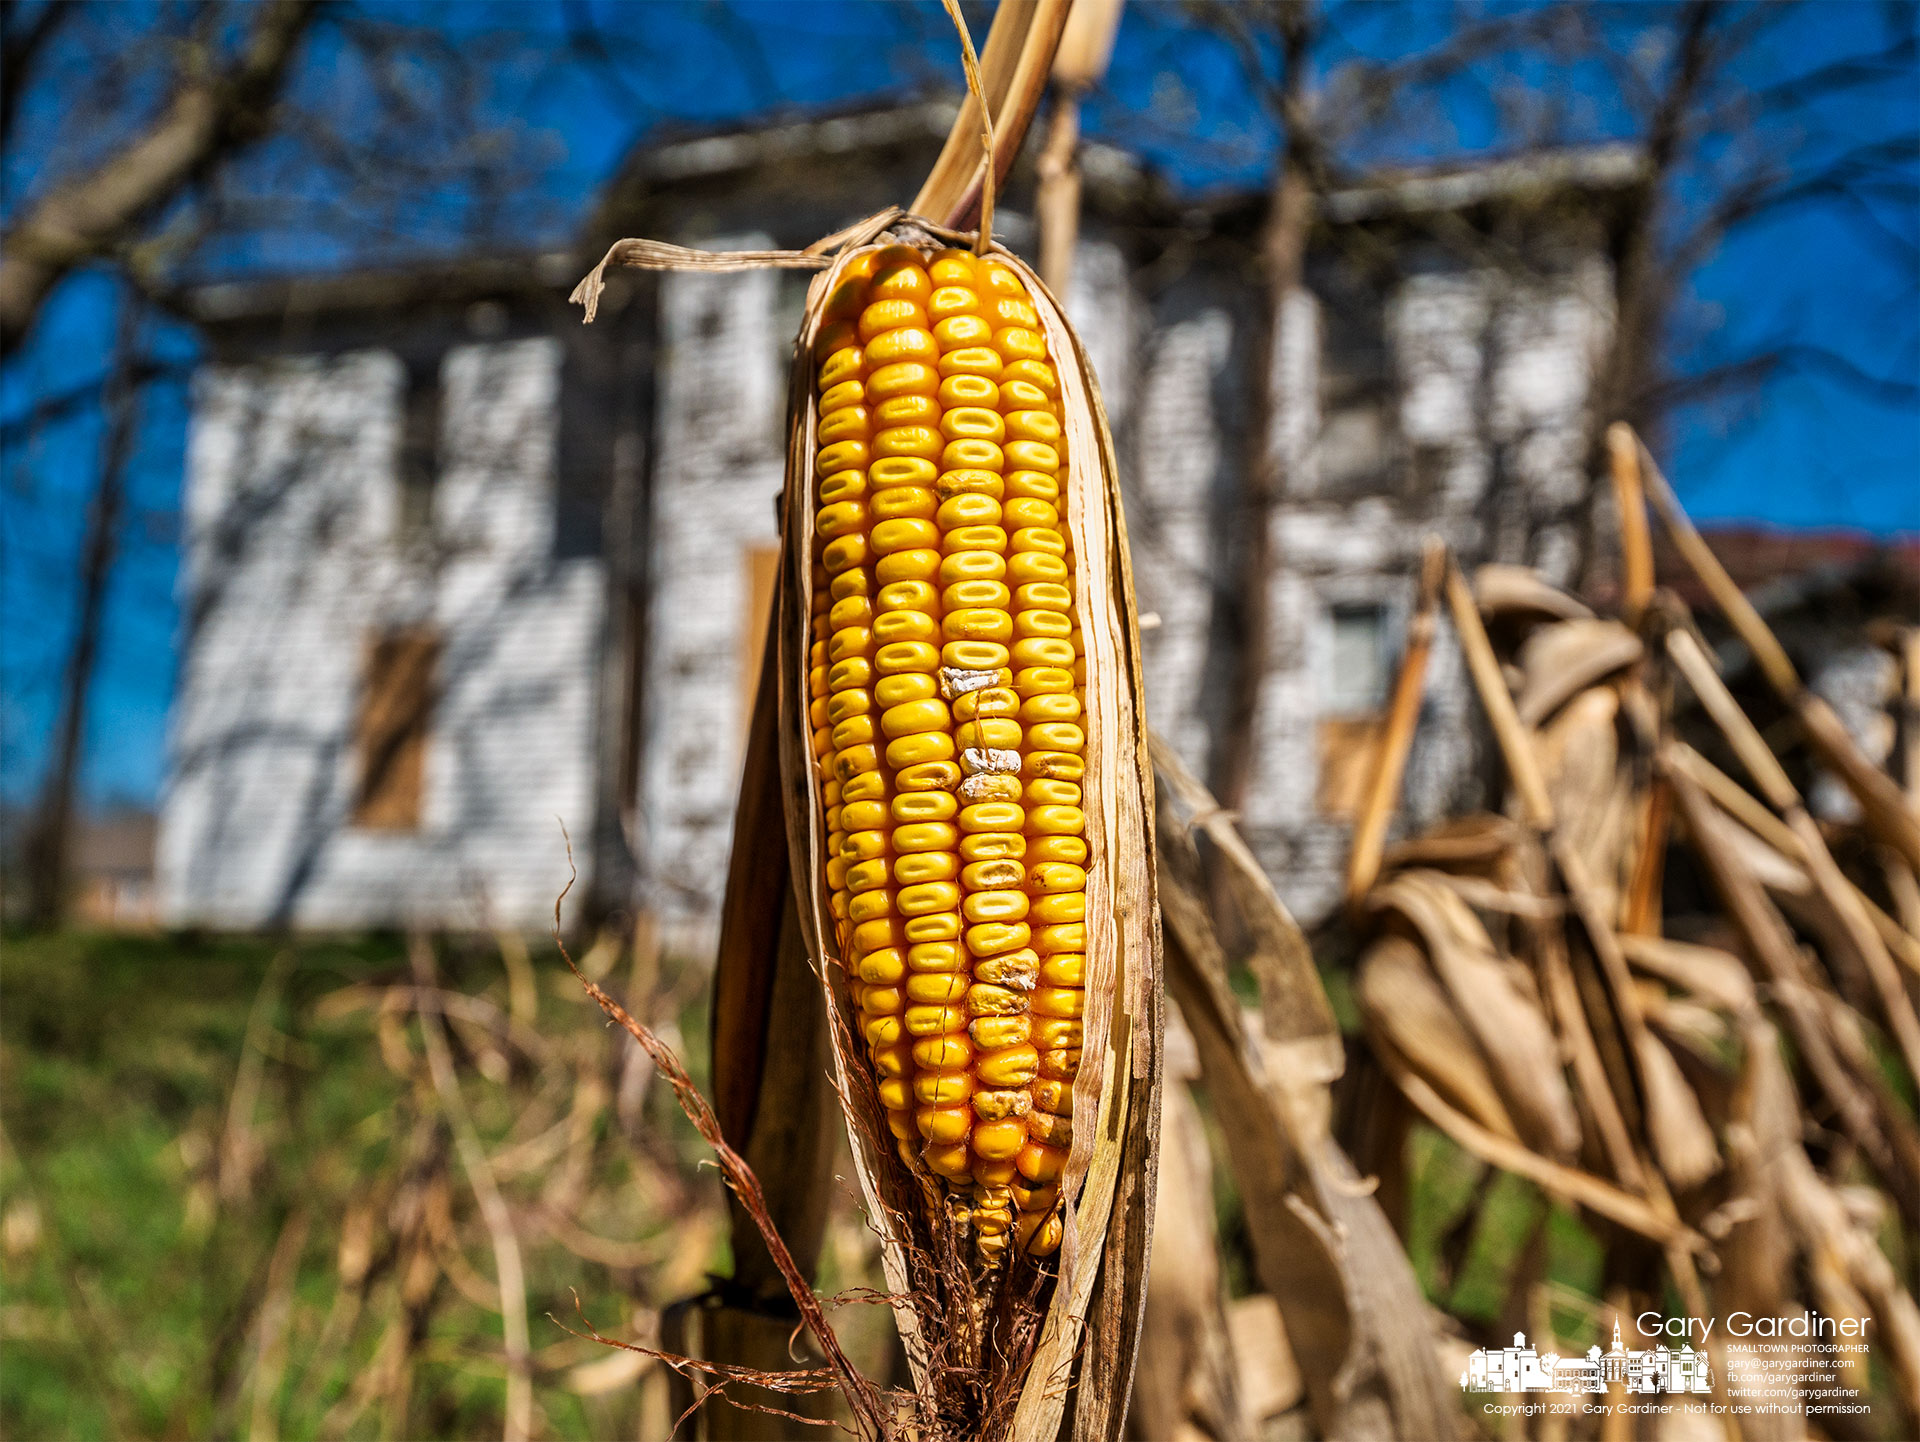 An ear of corn that avoided the maw of a single-row corn picker rests nearly alone as spring weather begins to warm the field next to the old farmhouse at the Braun Farm. My Final Photo for March 29, 2021.